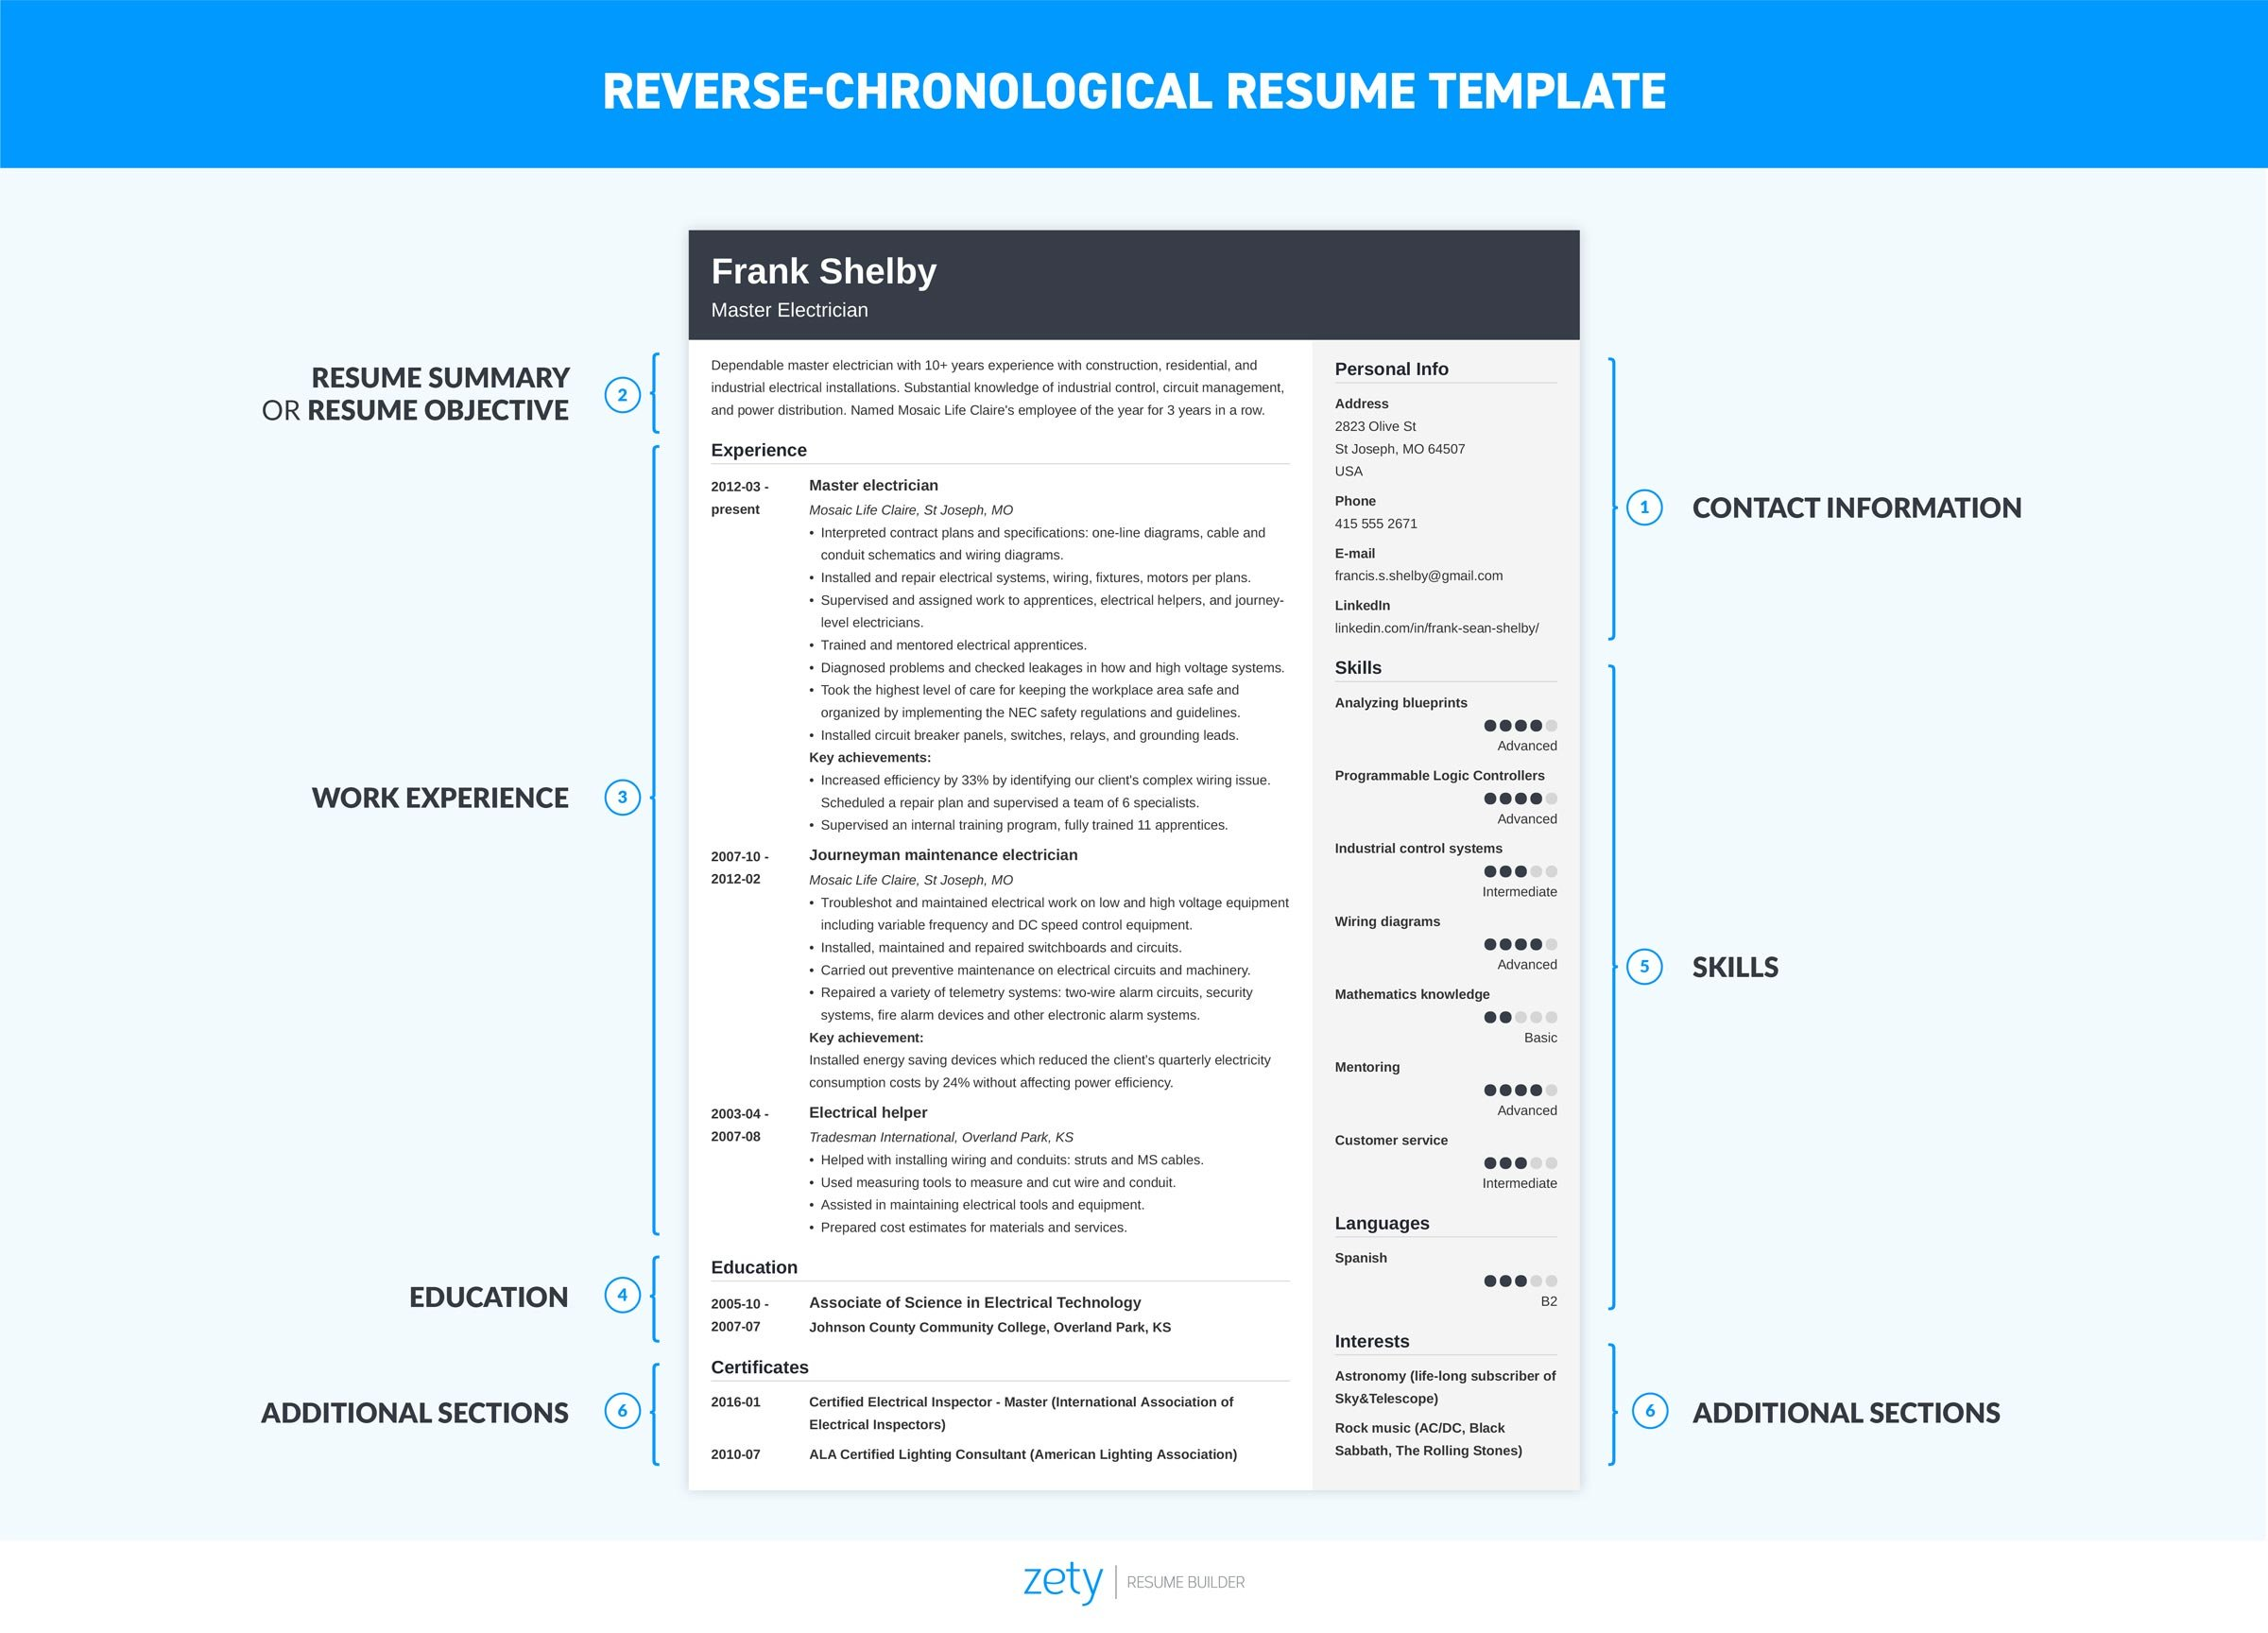 chronological resume template format examples and functional formats to write sdet sample Resume Chronological And Functional Resume Formats